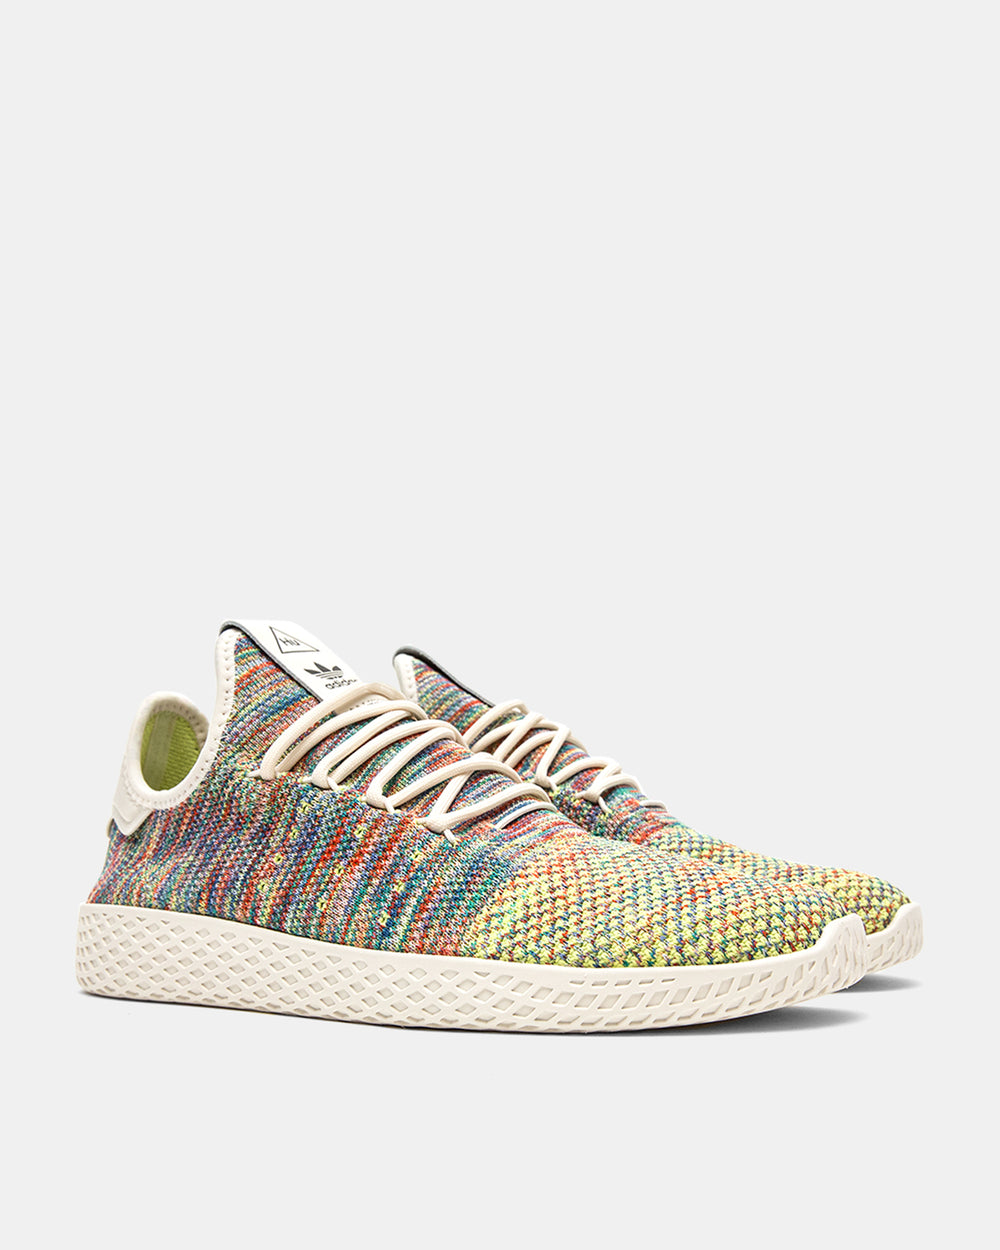 adidas - Pharrell Williams Tennis HU (Heritage Green)